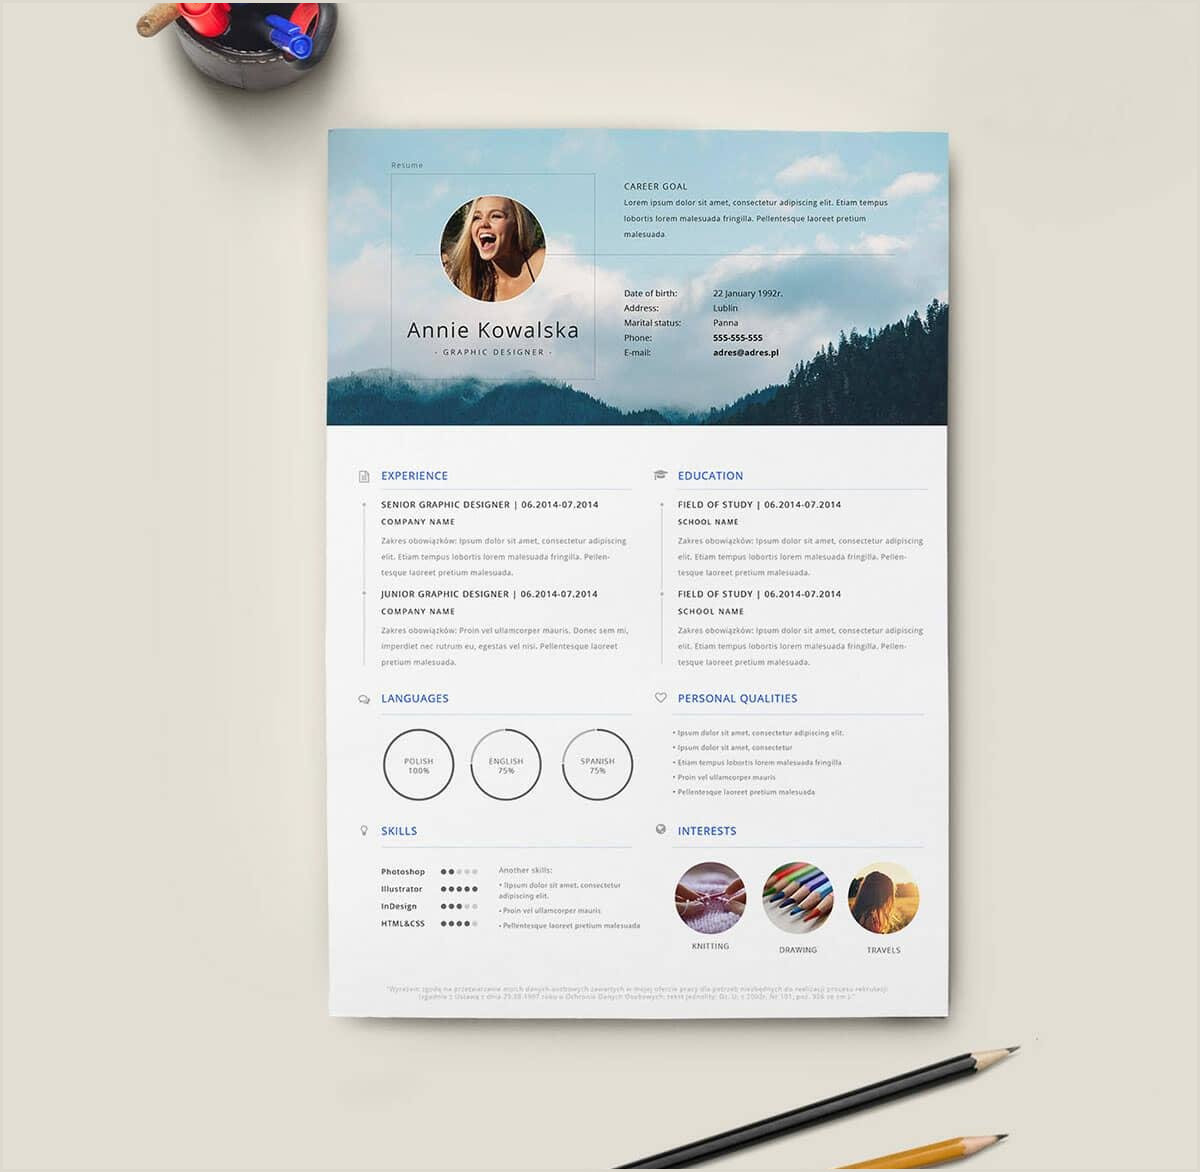 New Latest Cv format Download 17 Free Resume Templates Downloadable